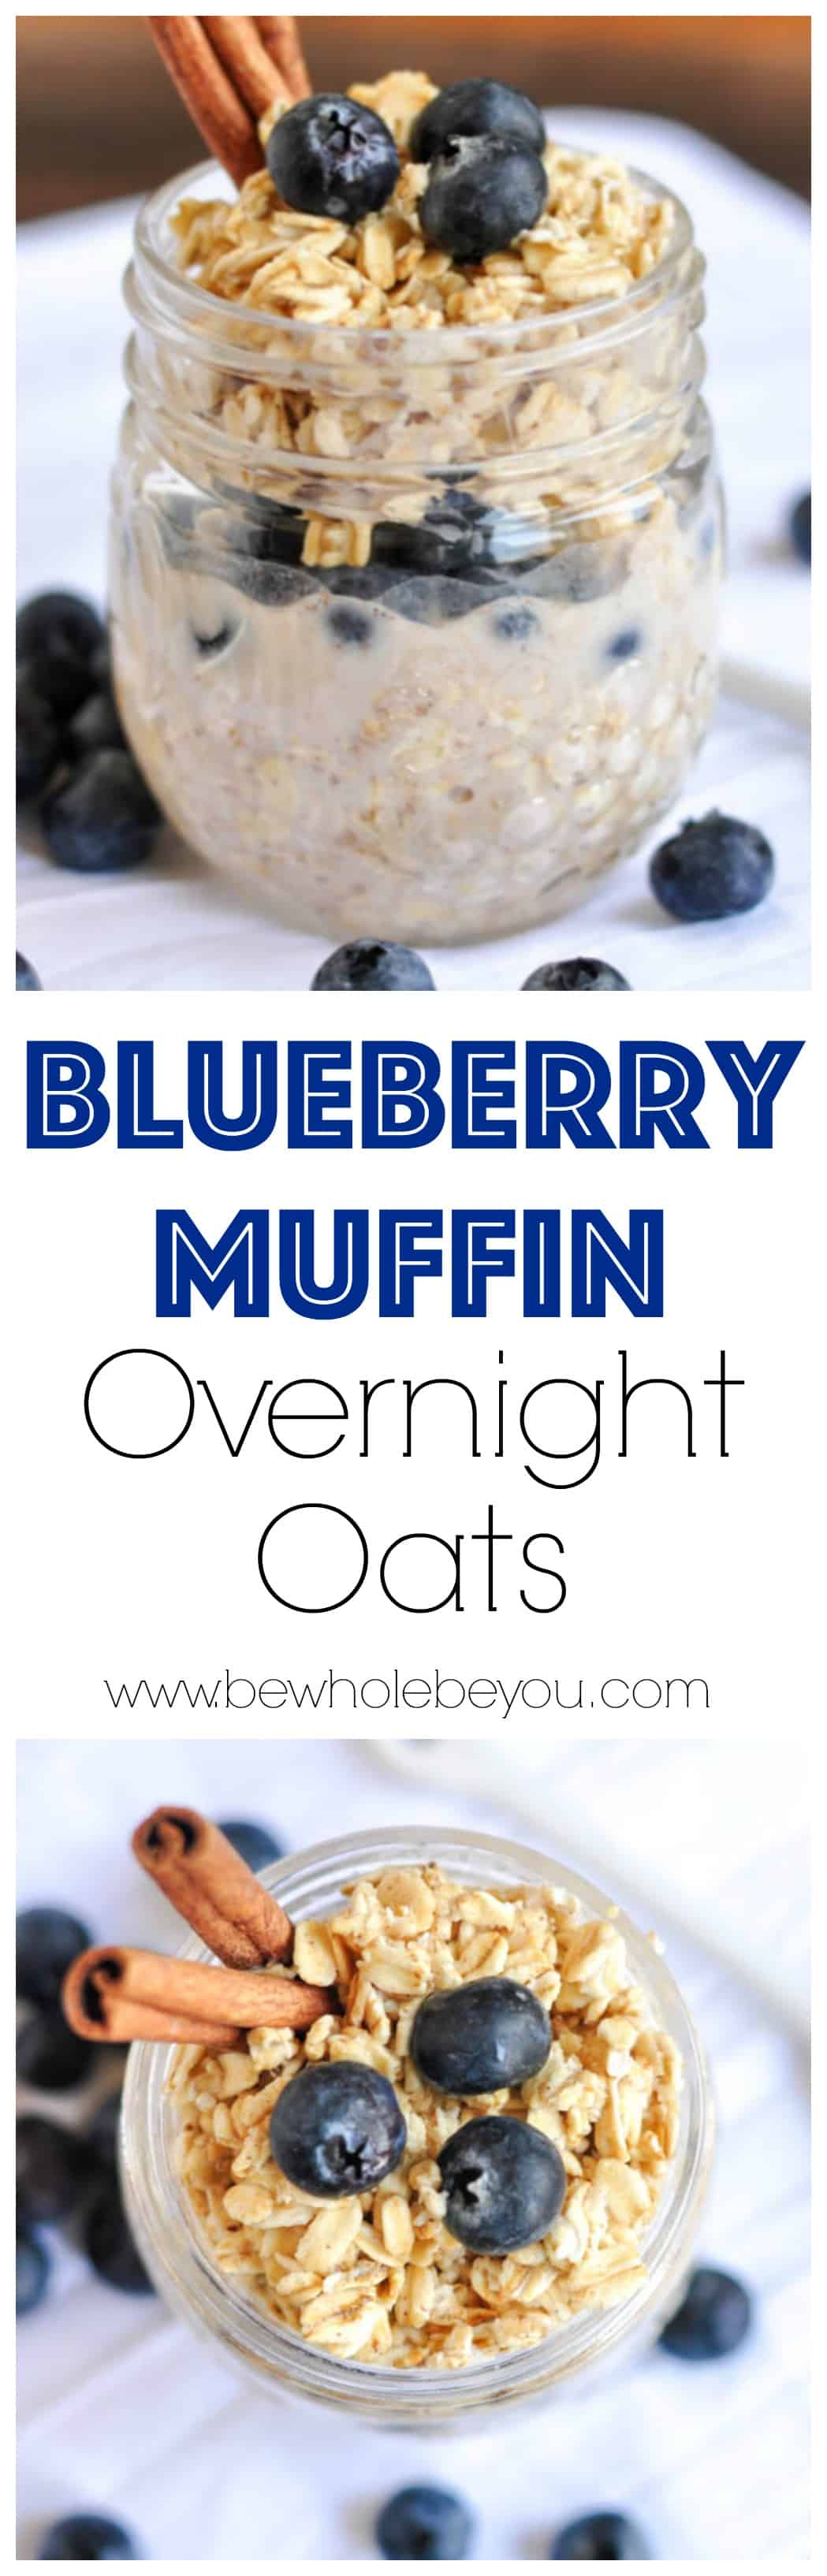 Blueberry Muffin Overnight Oats. Be Whole. Be You. Have your favorite muffin in a hearty bowl of oatmeal! Ready to go in the morning.